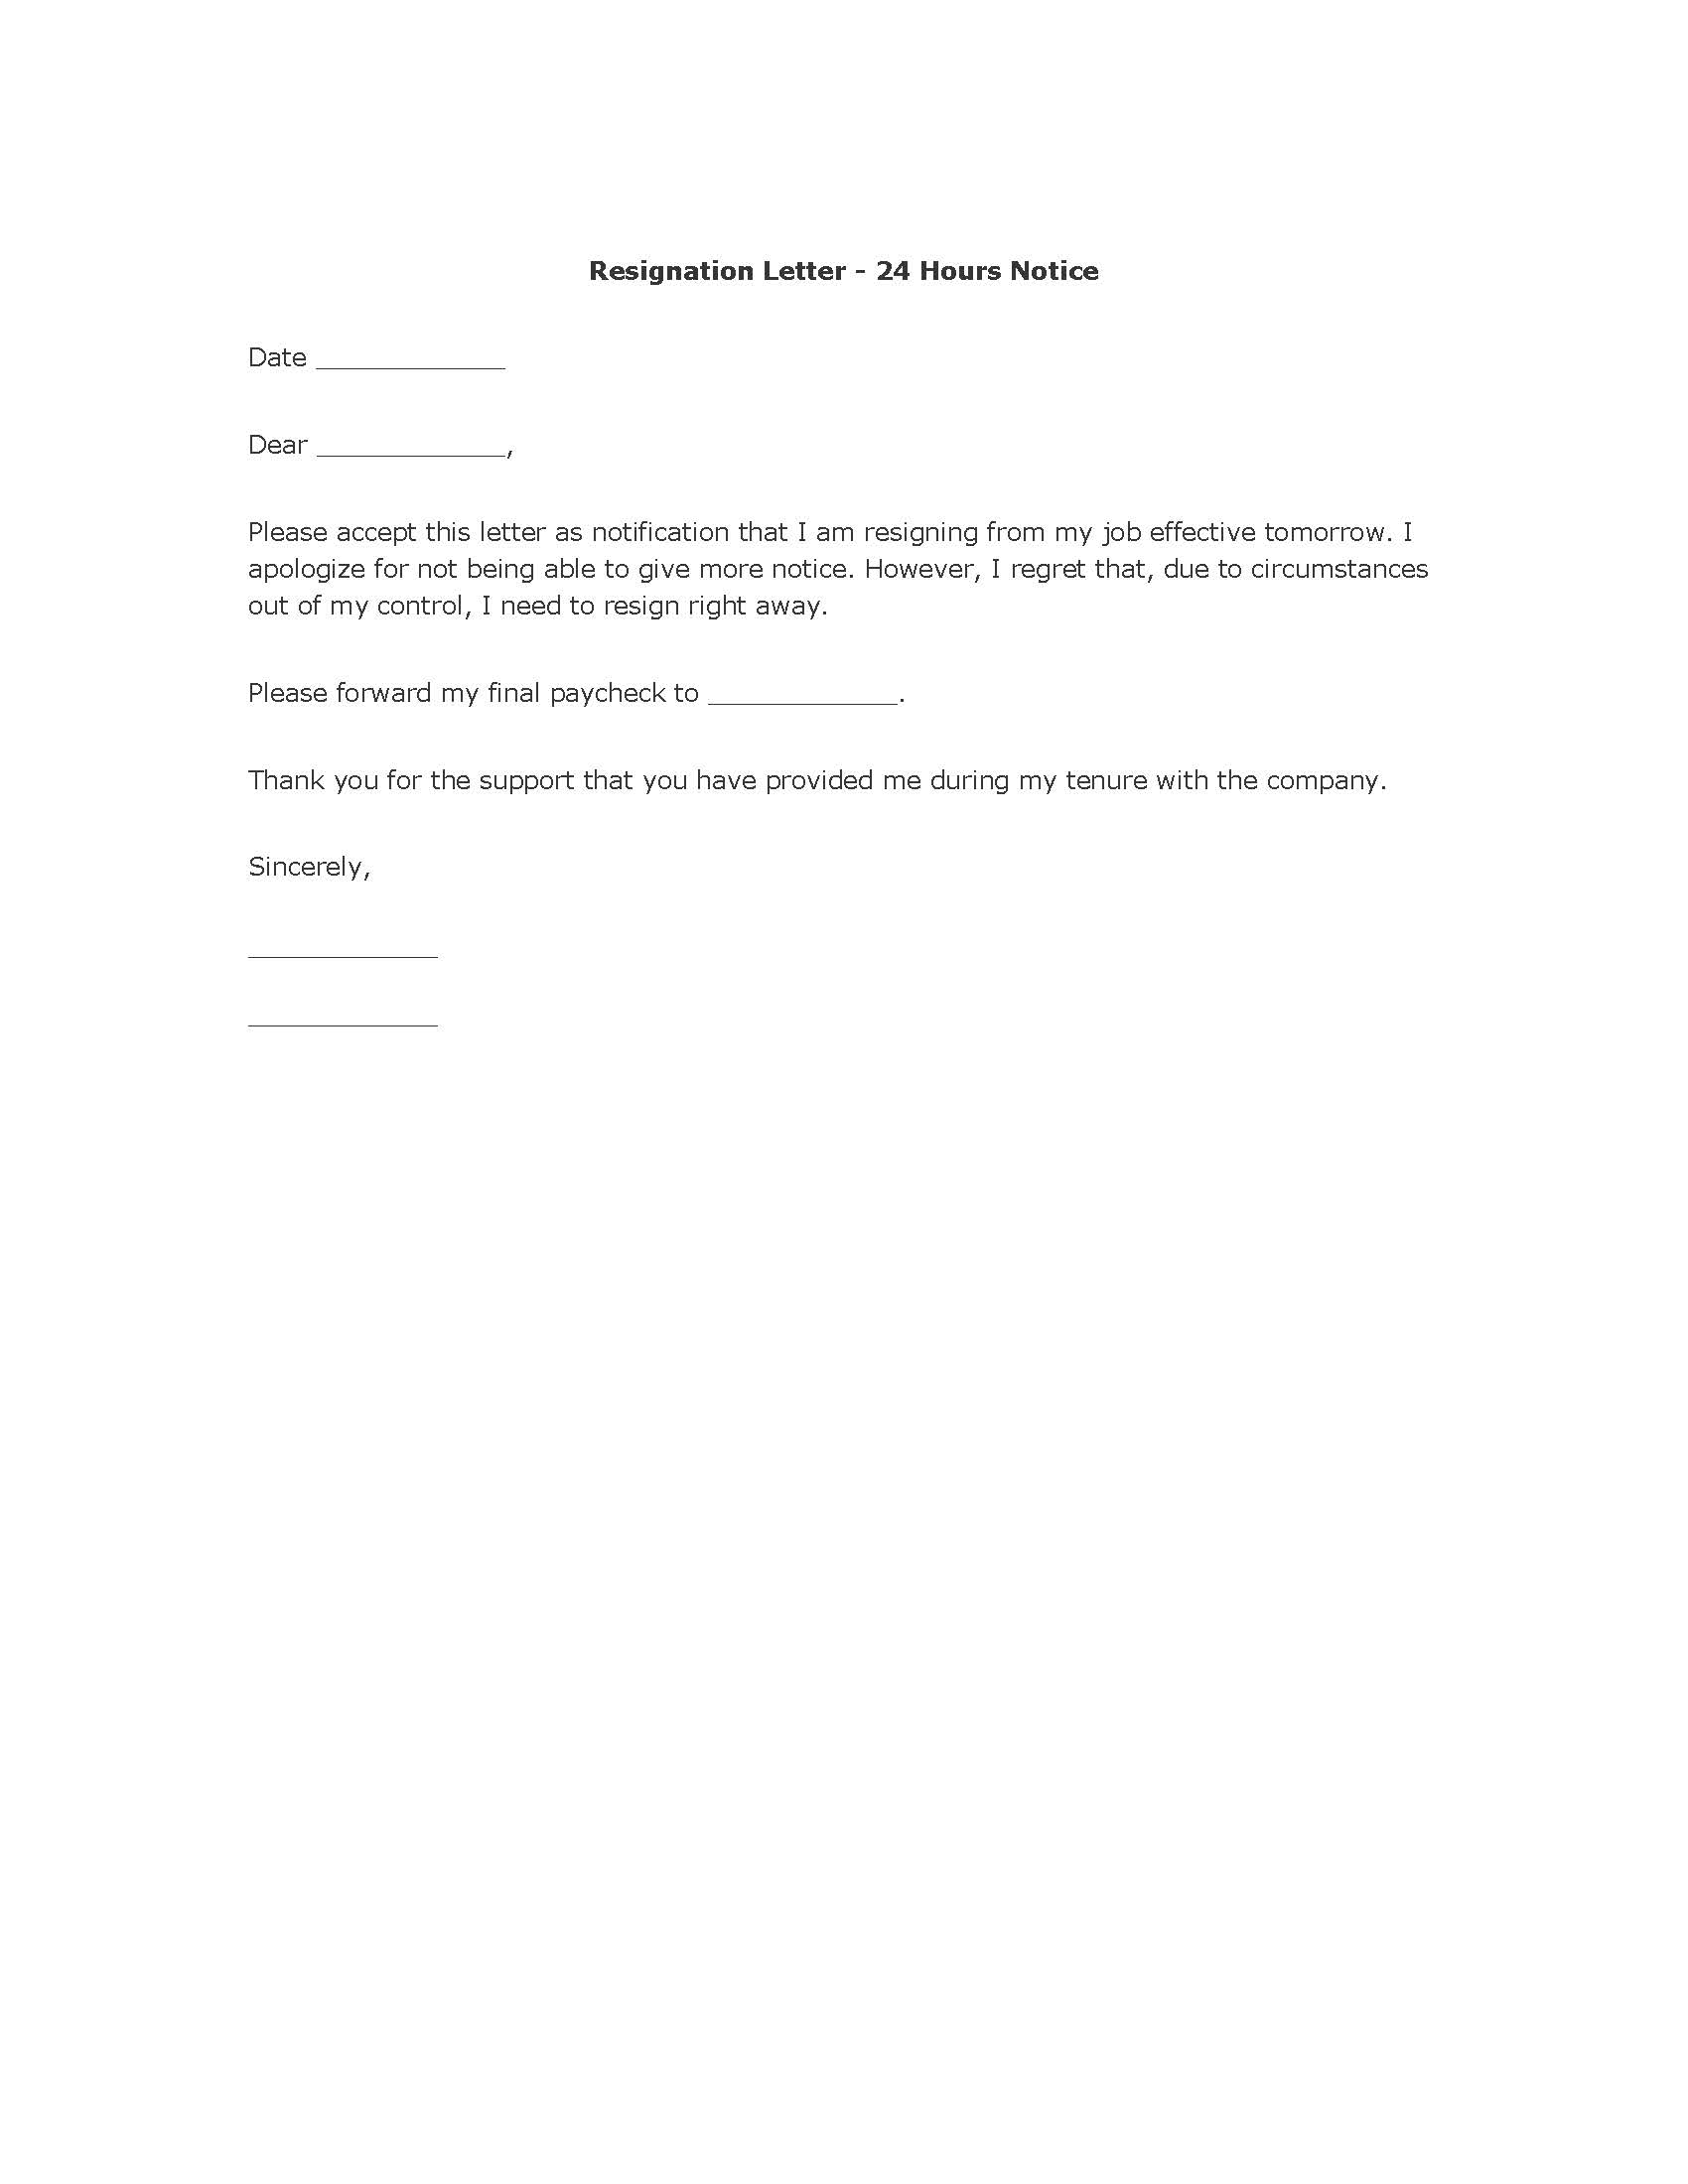 copy of resignation letter functional resume  copy